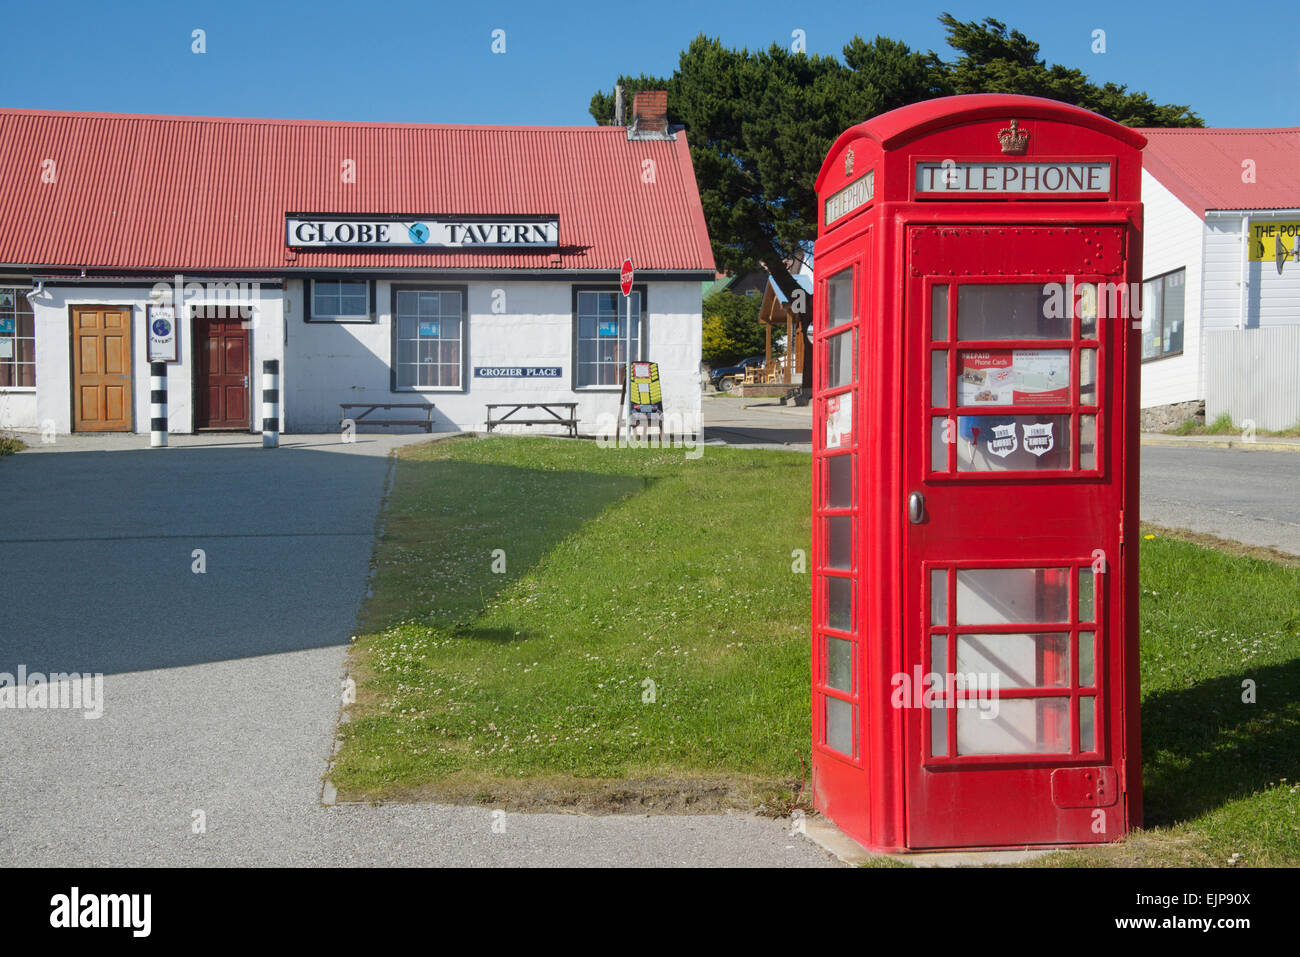 Globe and Tavern Pub with red telephone box Stanley Falkland Islands - Stock Image